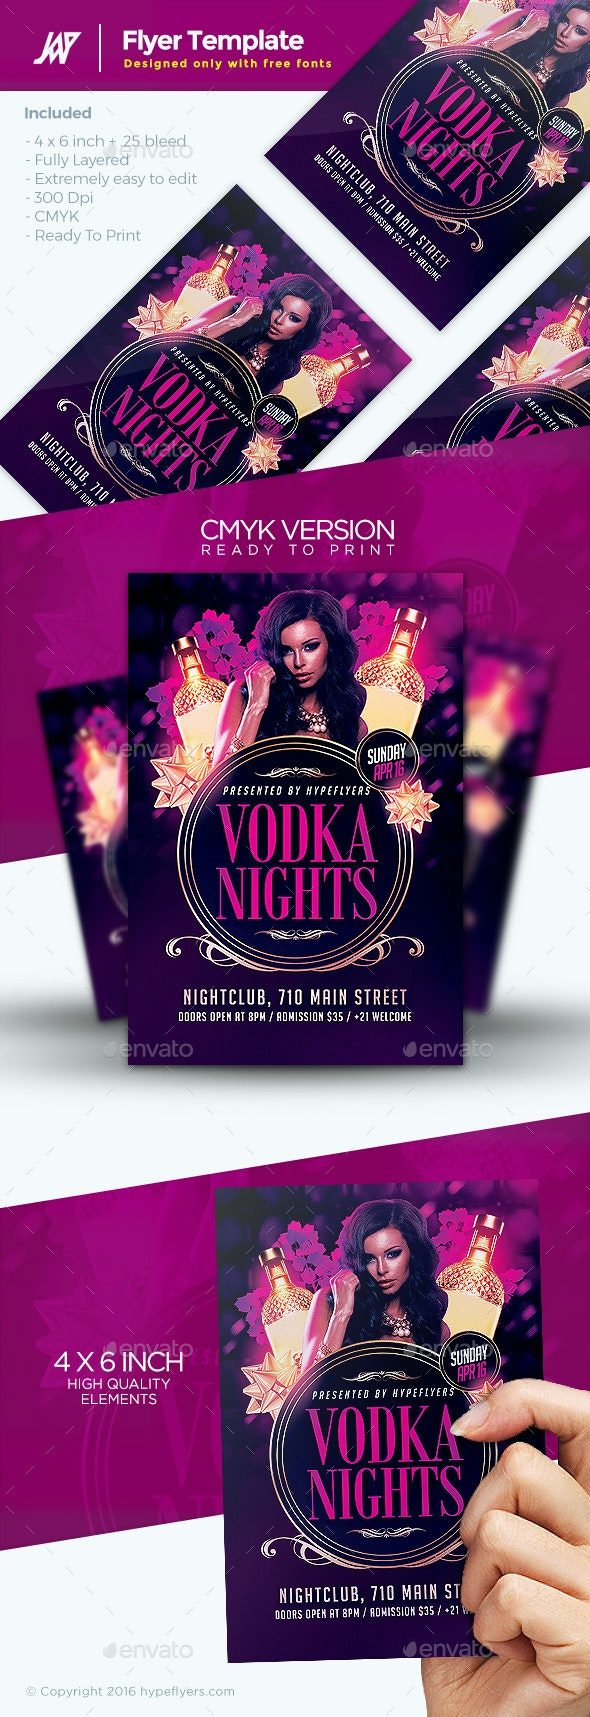 Classy Drinks Party Flyer Template - Clubs & Parties Events